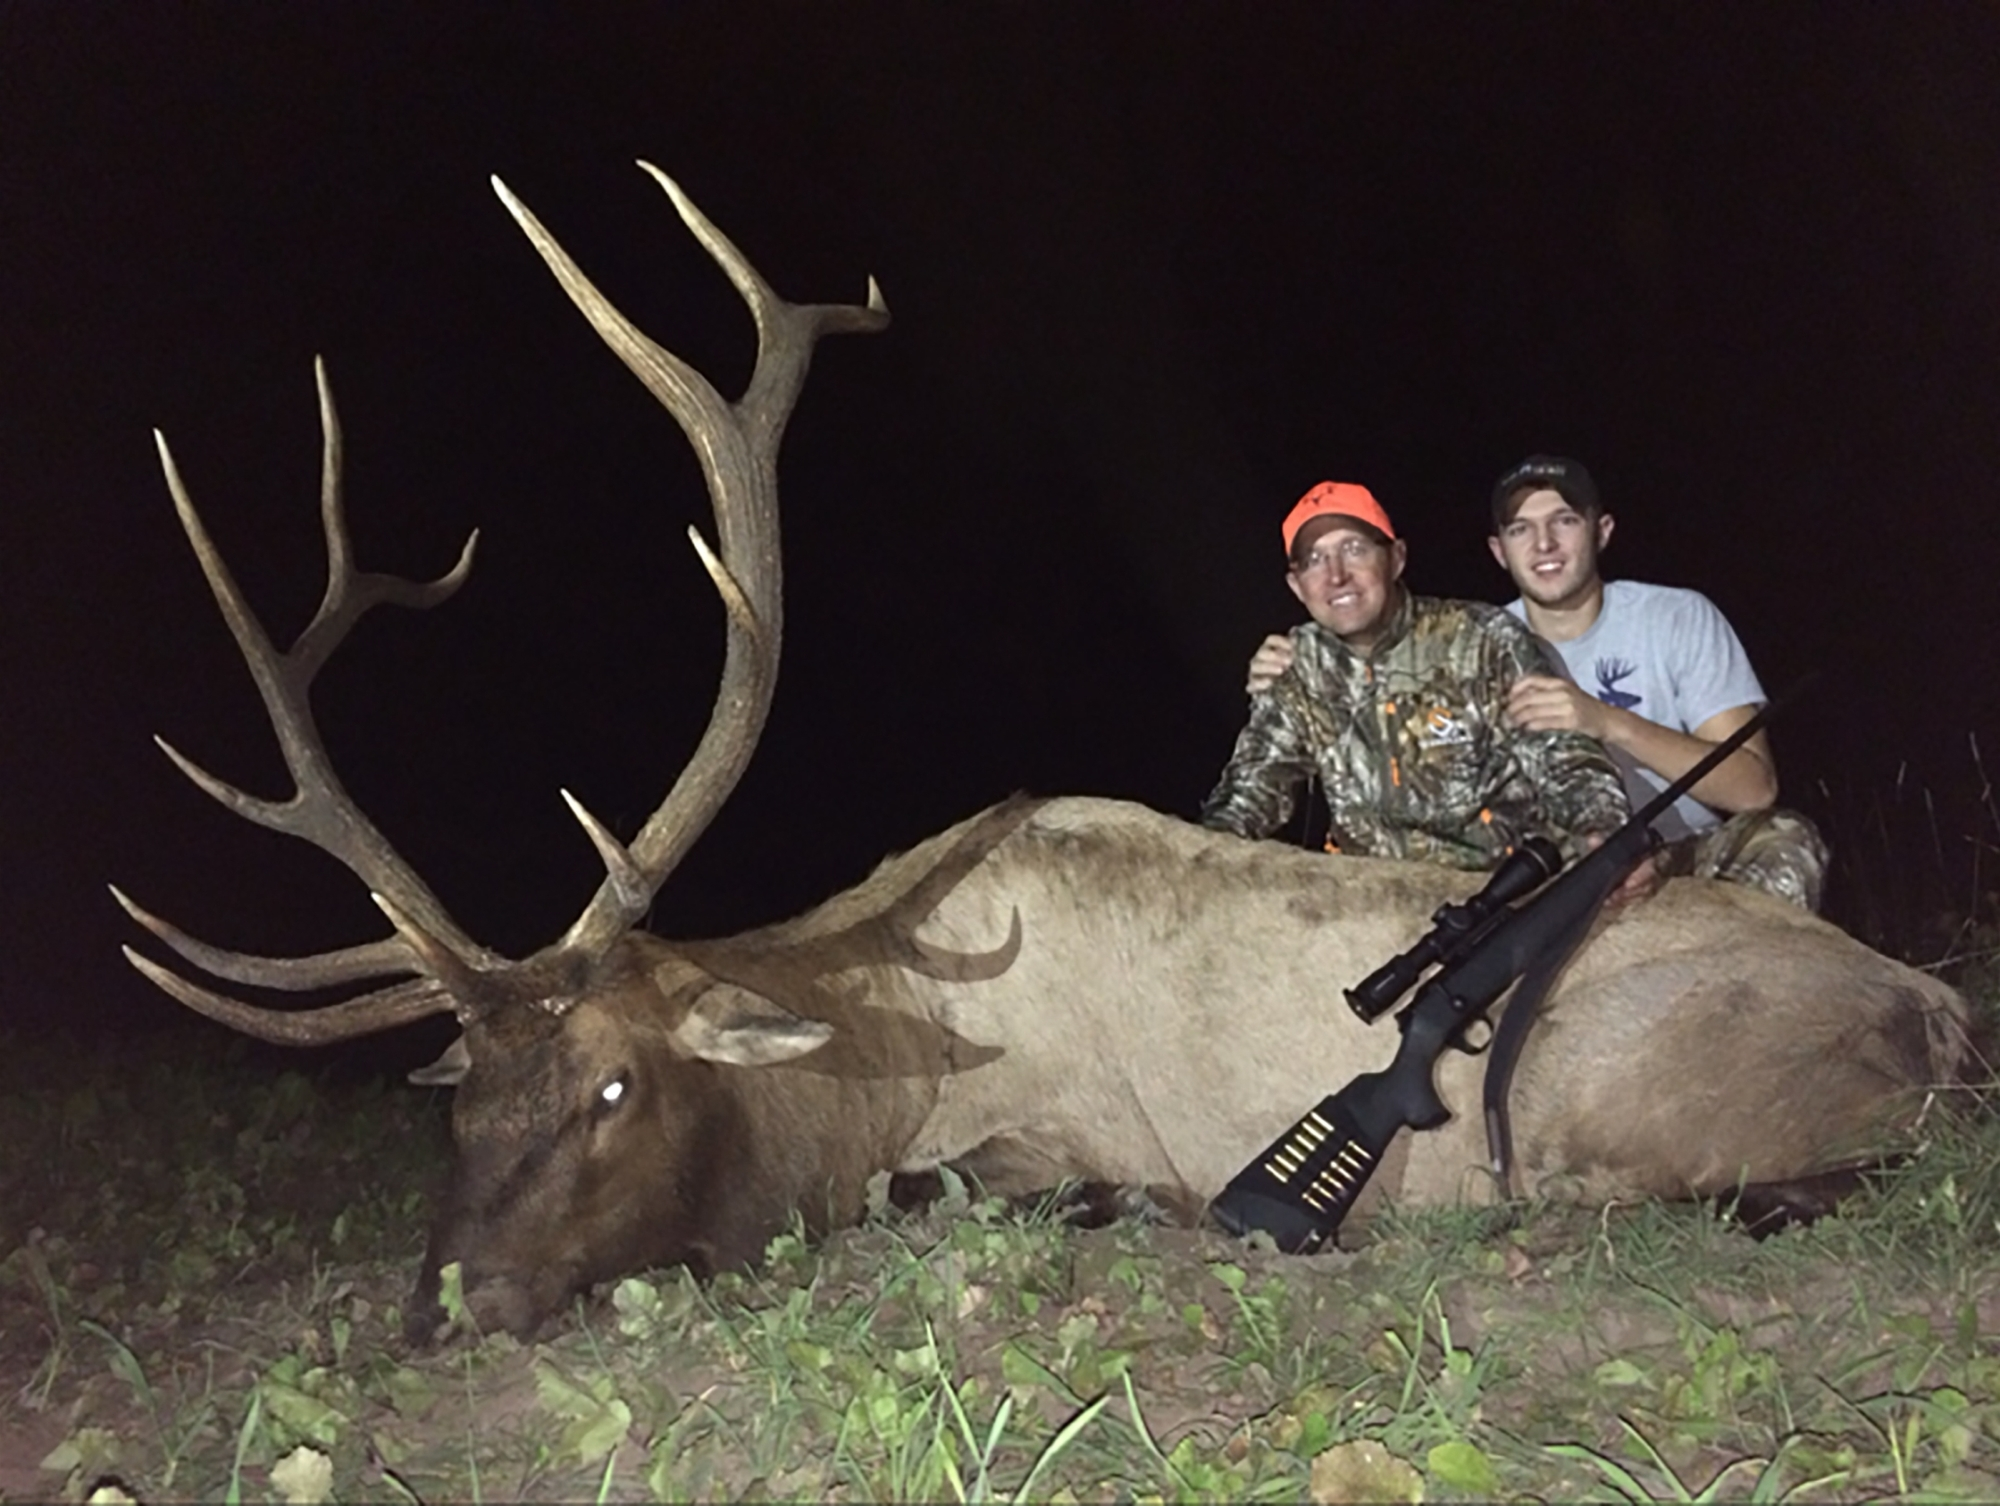 Pure Michigan Hunt 2015 winner Mike DiLorenzo of Rochester is shown with his son and the elk he bagged.